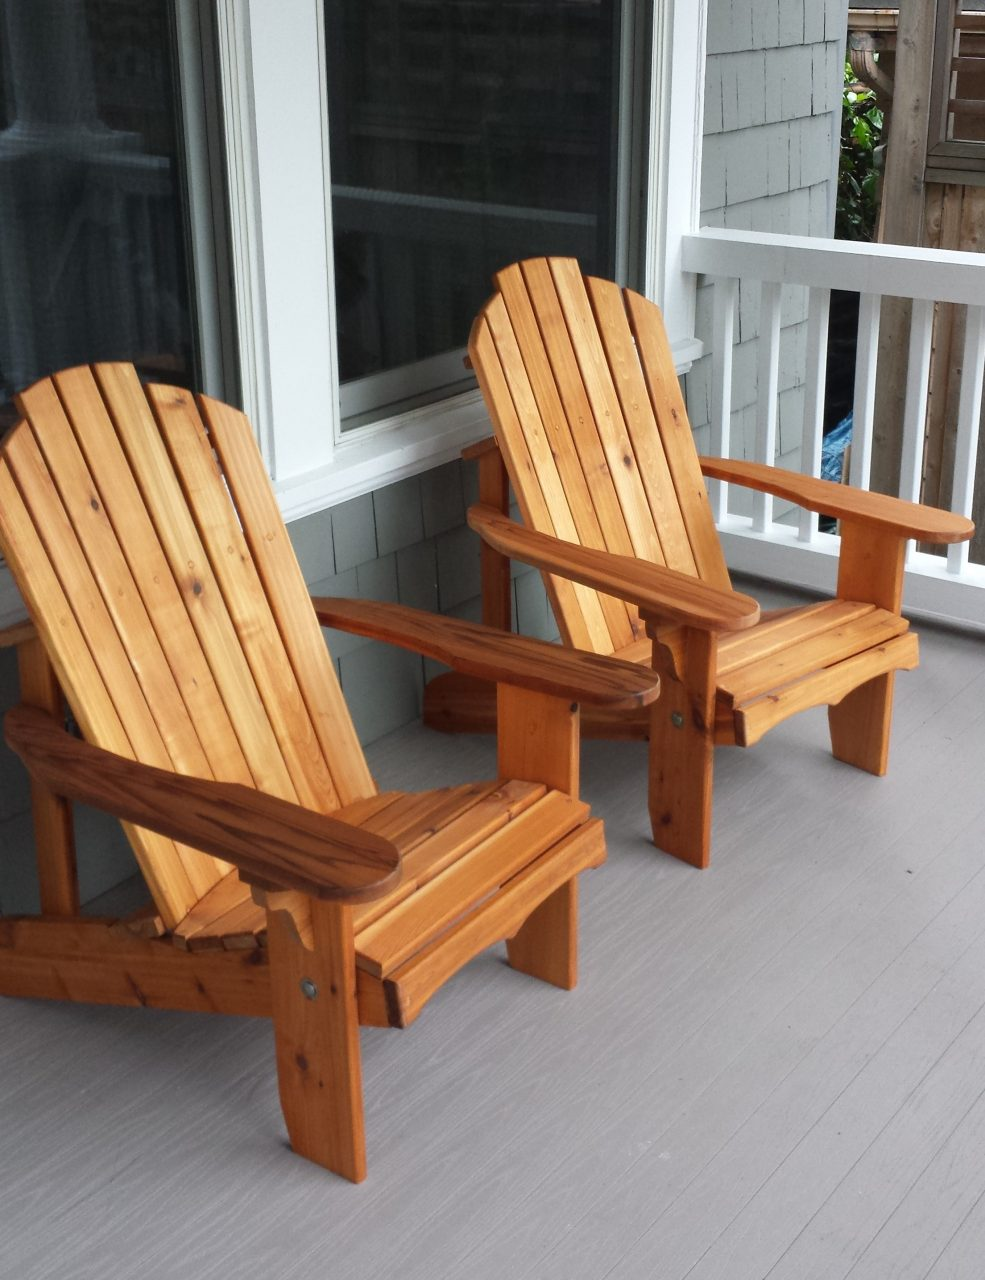 Porch Living With Adirondack Chairs Adirondack Chairs Seattle